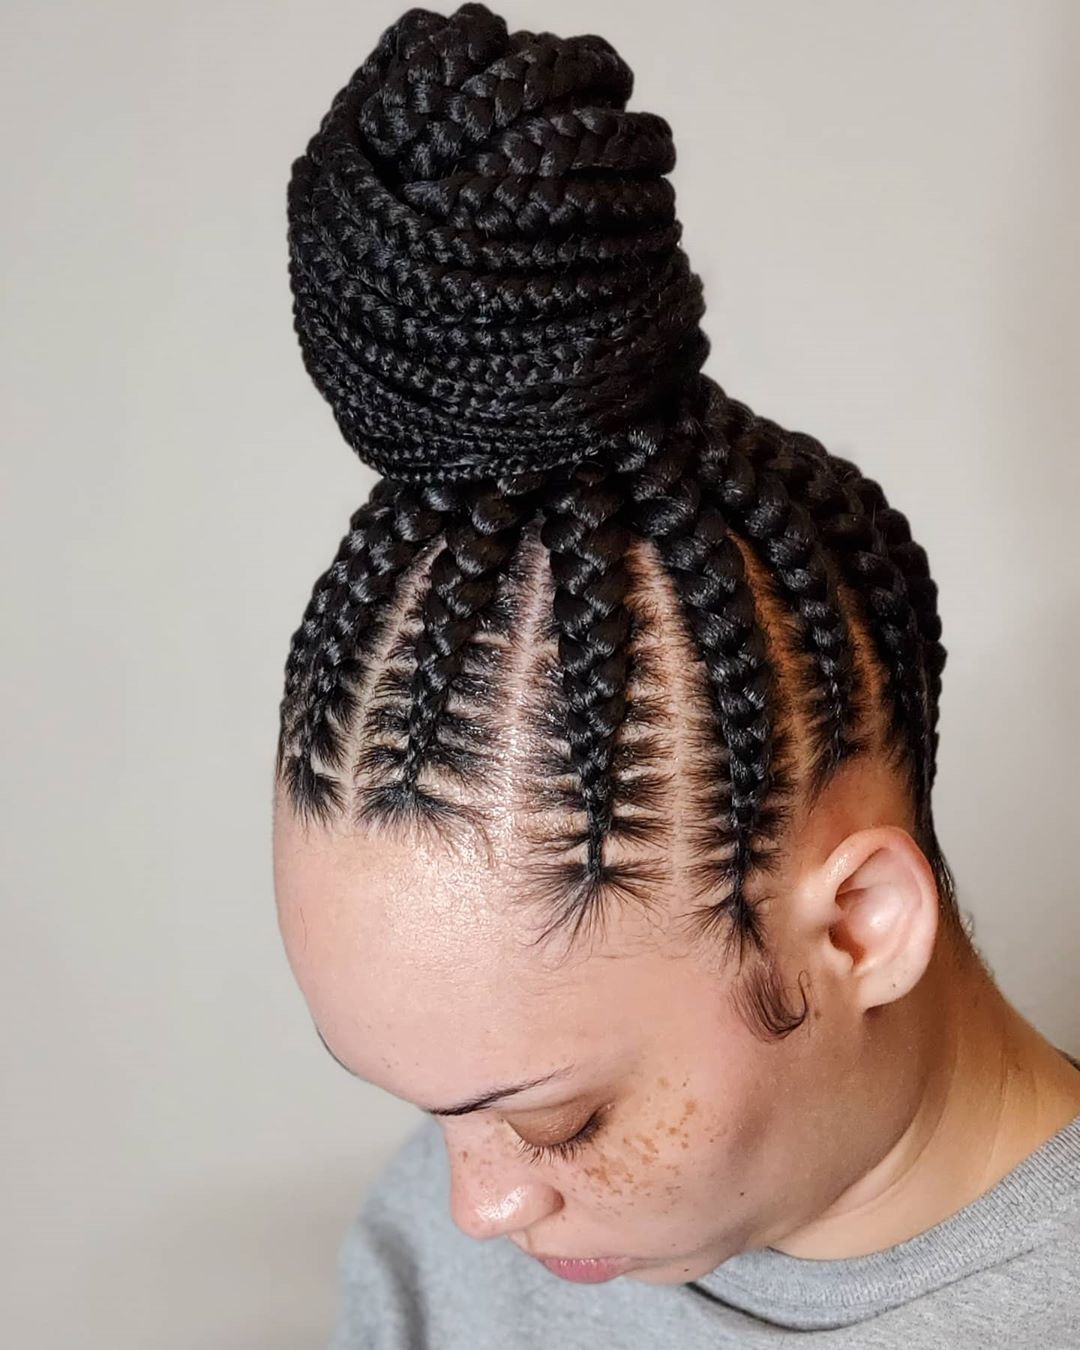 Big Cornrows in a High Bun